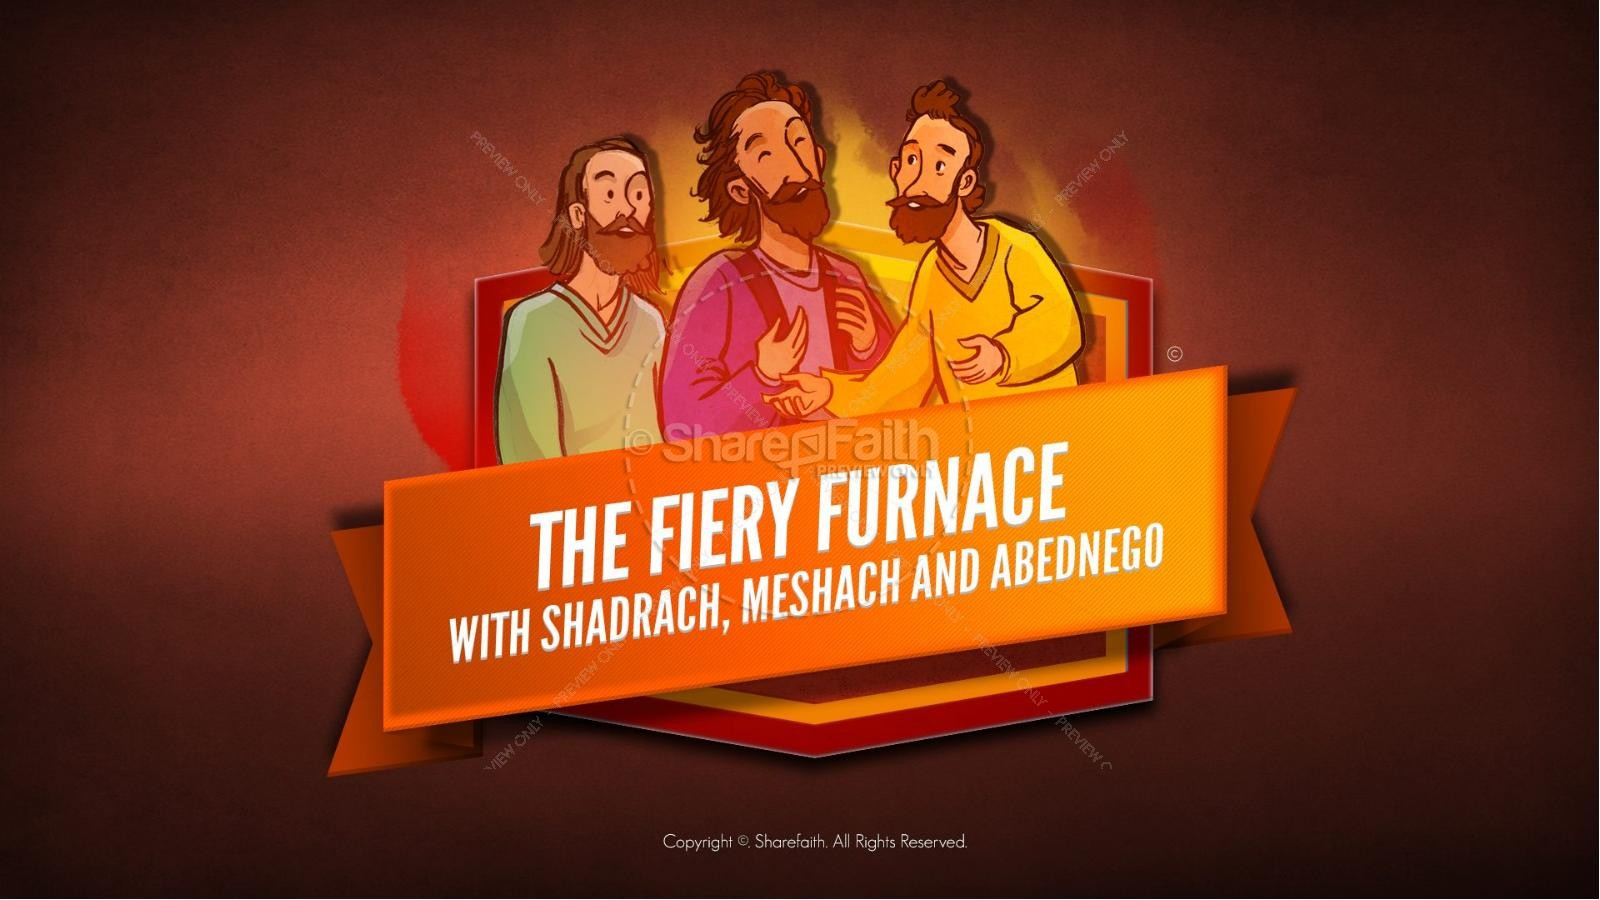 The Fiery Furnace with Shadrach, Meshach and Abednego Kids Bible Story | slide 1